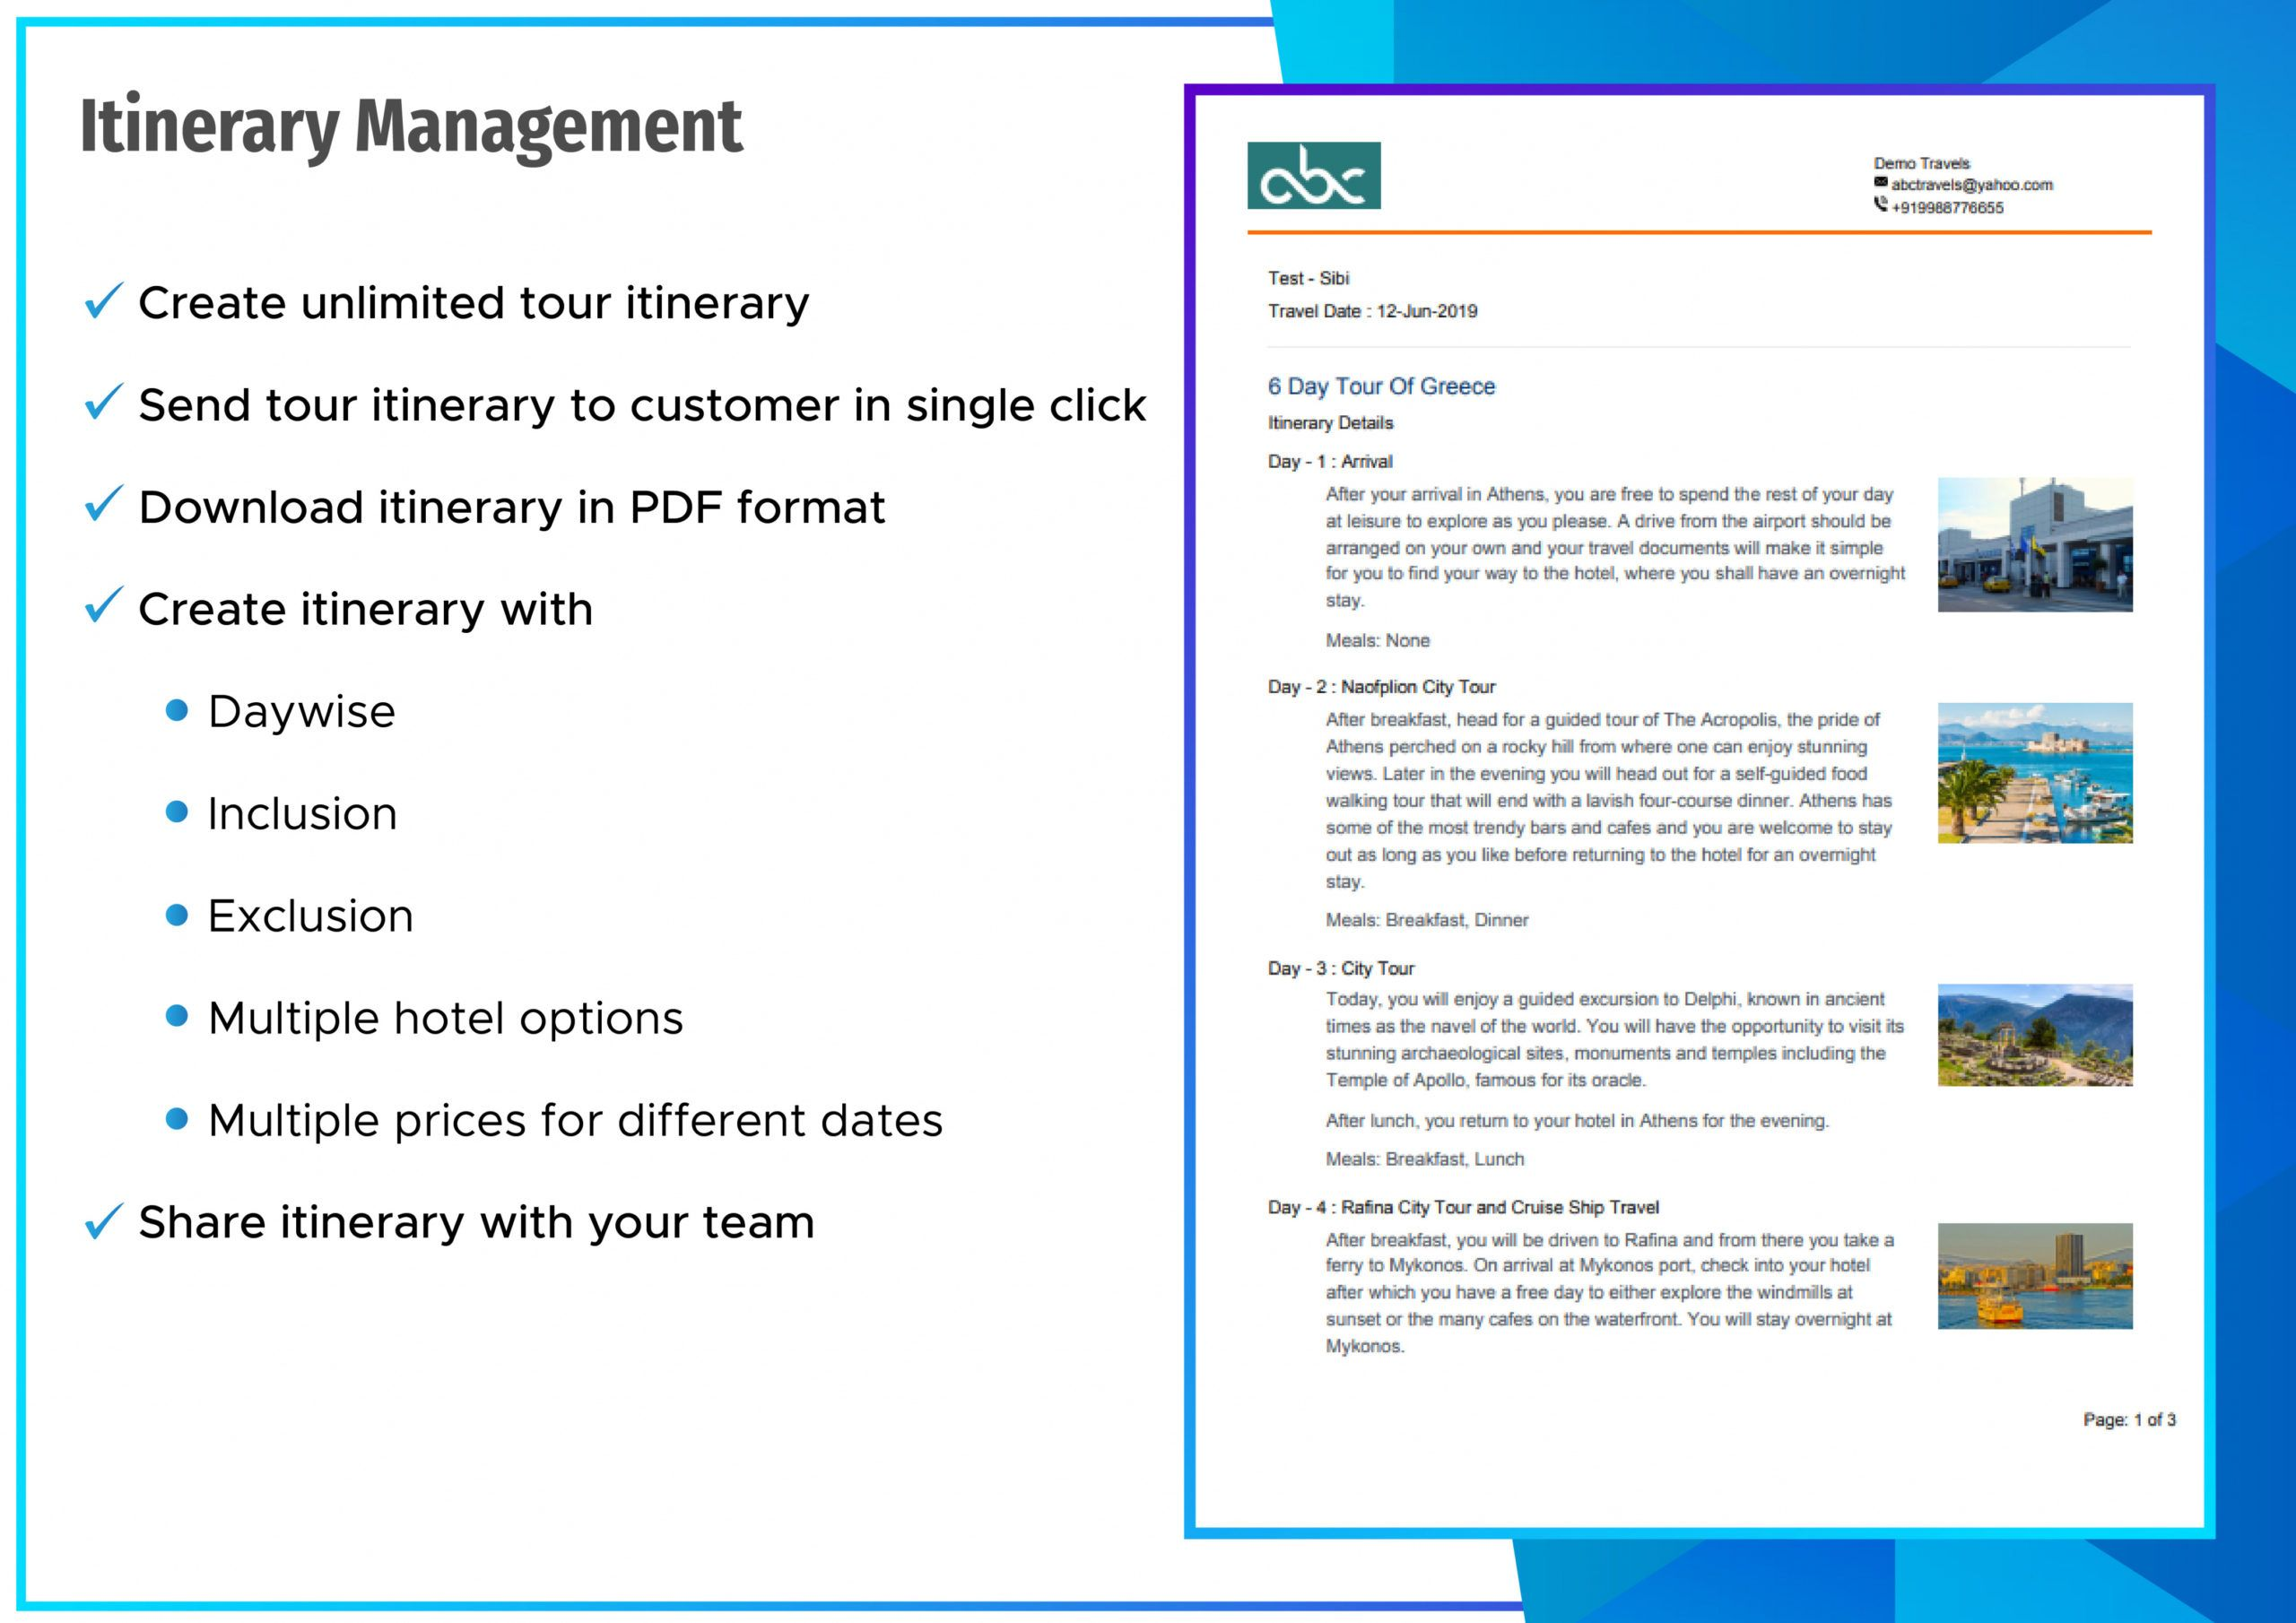 printable travel ceo itinerary management  travel ceo  travel agency travel agent itinerary template example